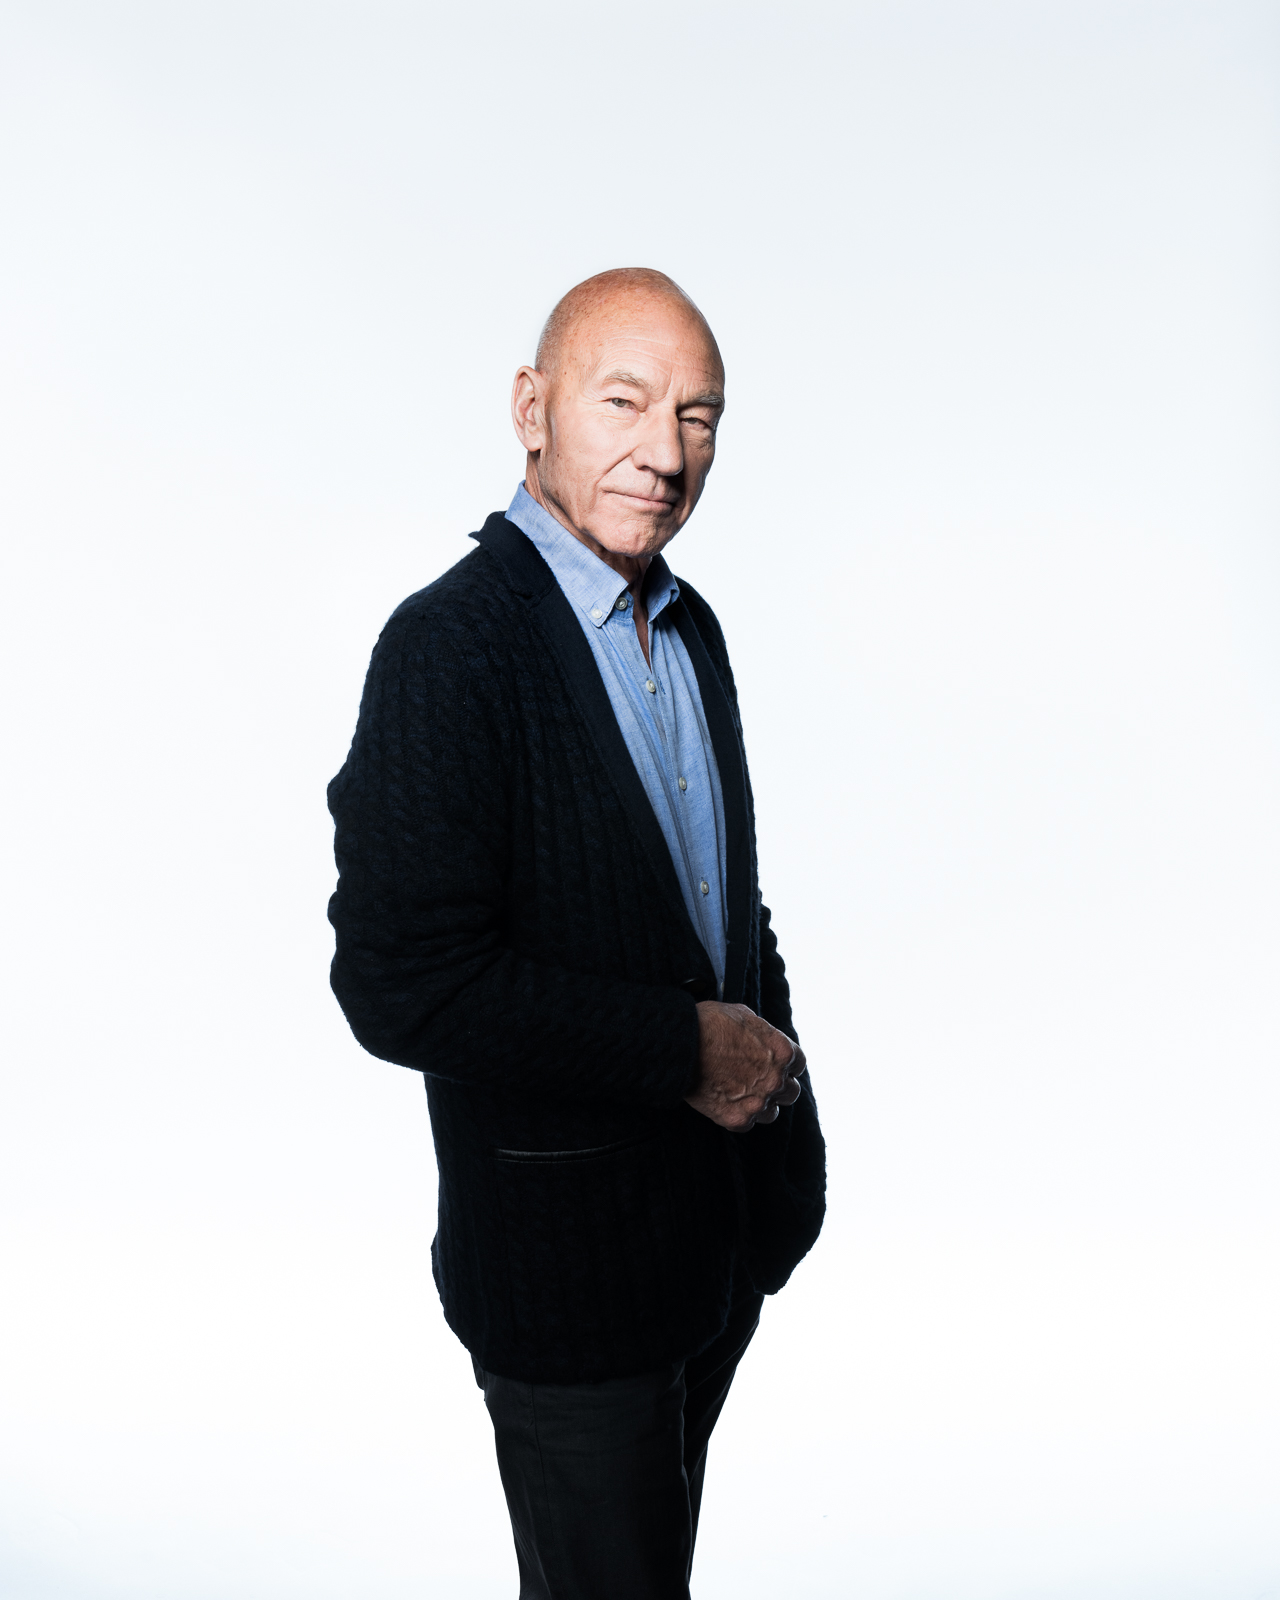 Sir Patrick Stewart photographed by Eric Schwabel